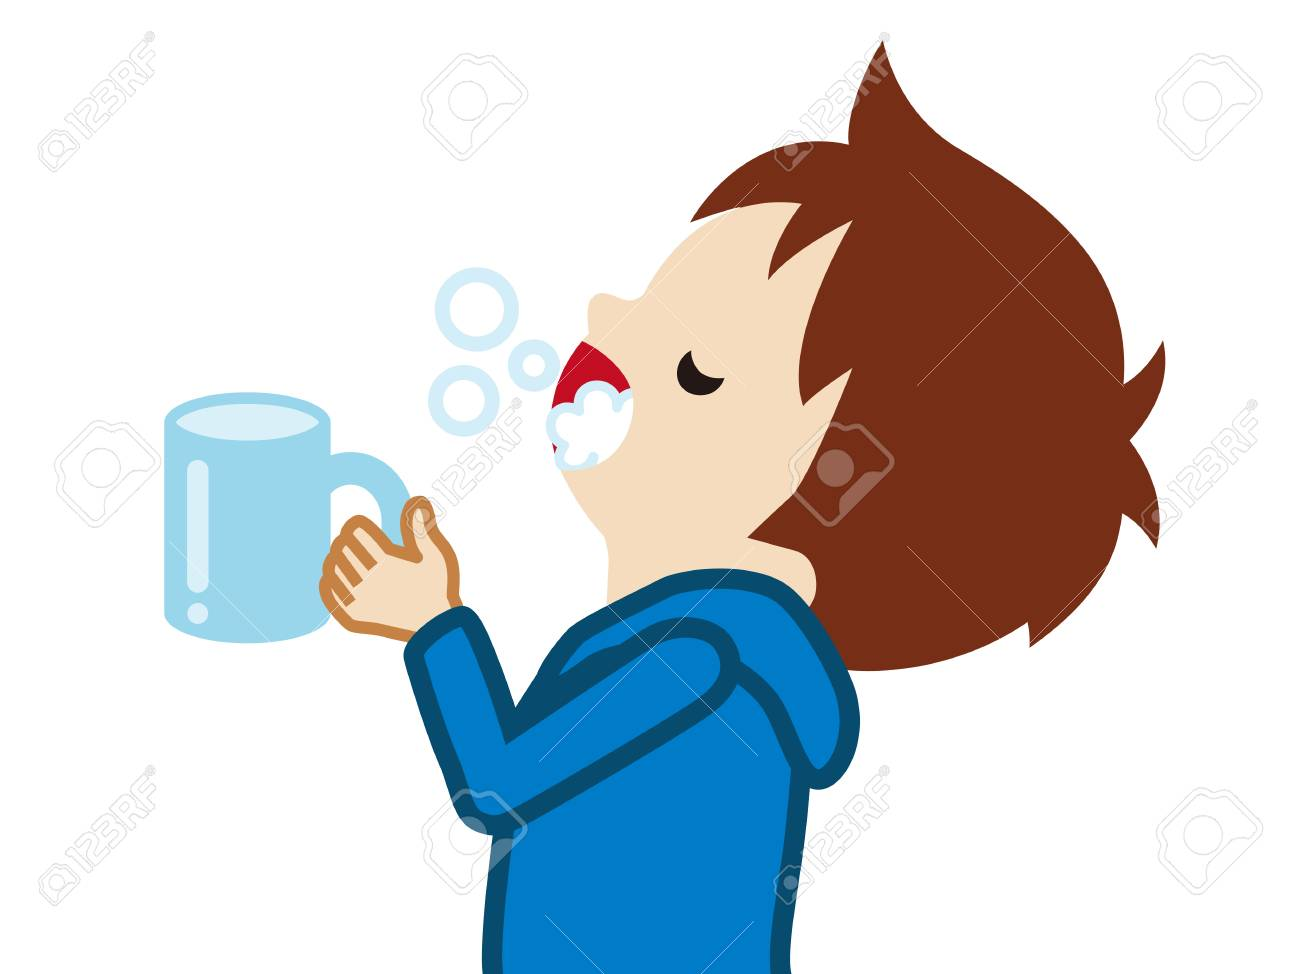 Toddler boy gargling with water for prevent cold - 117371481